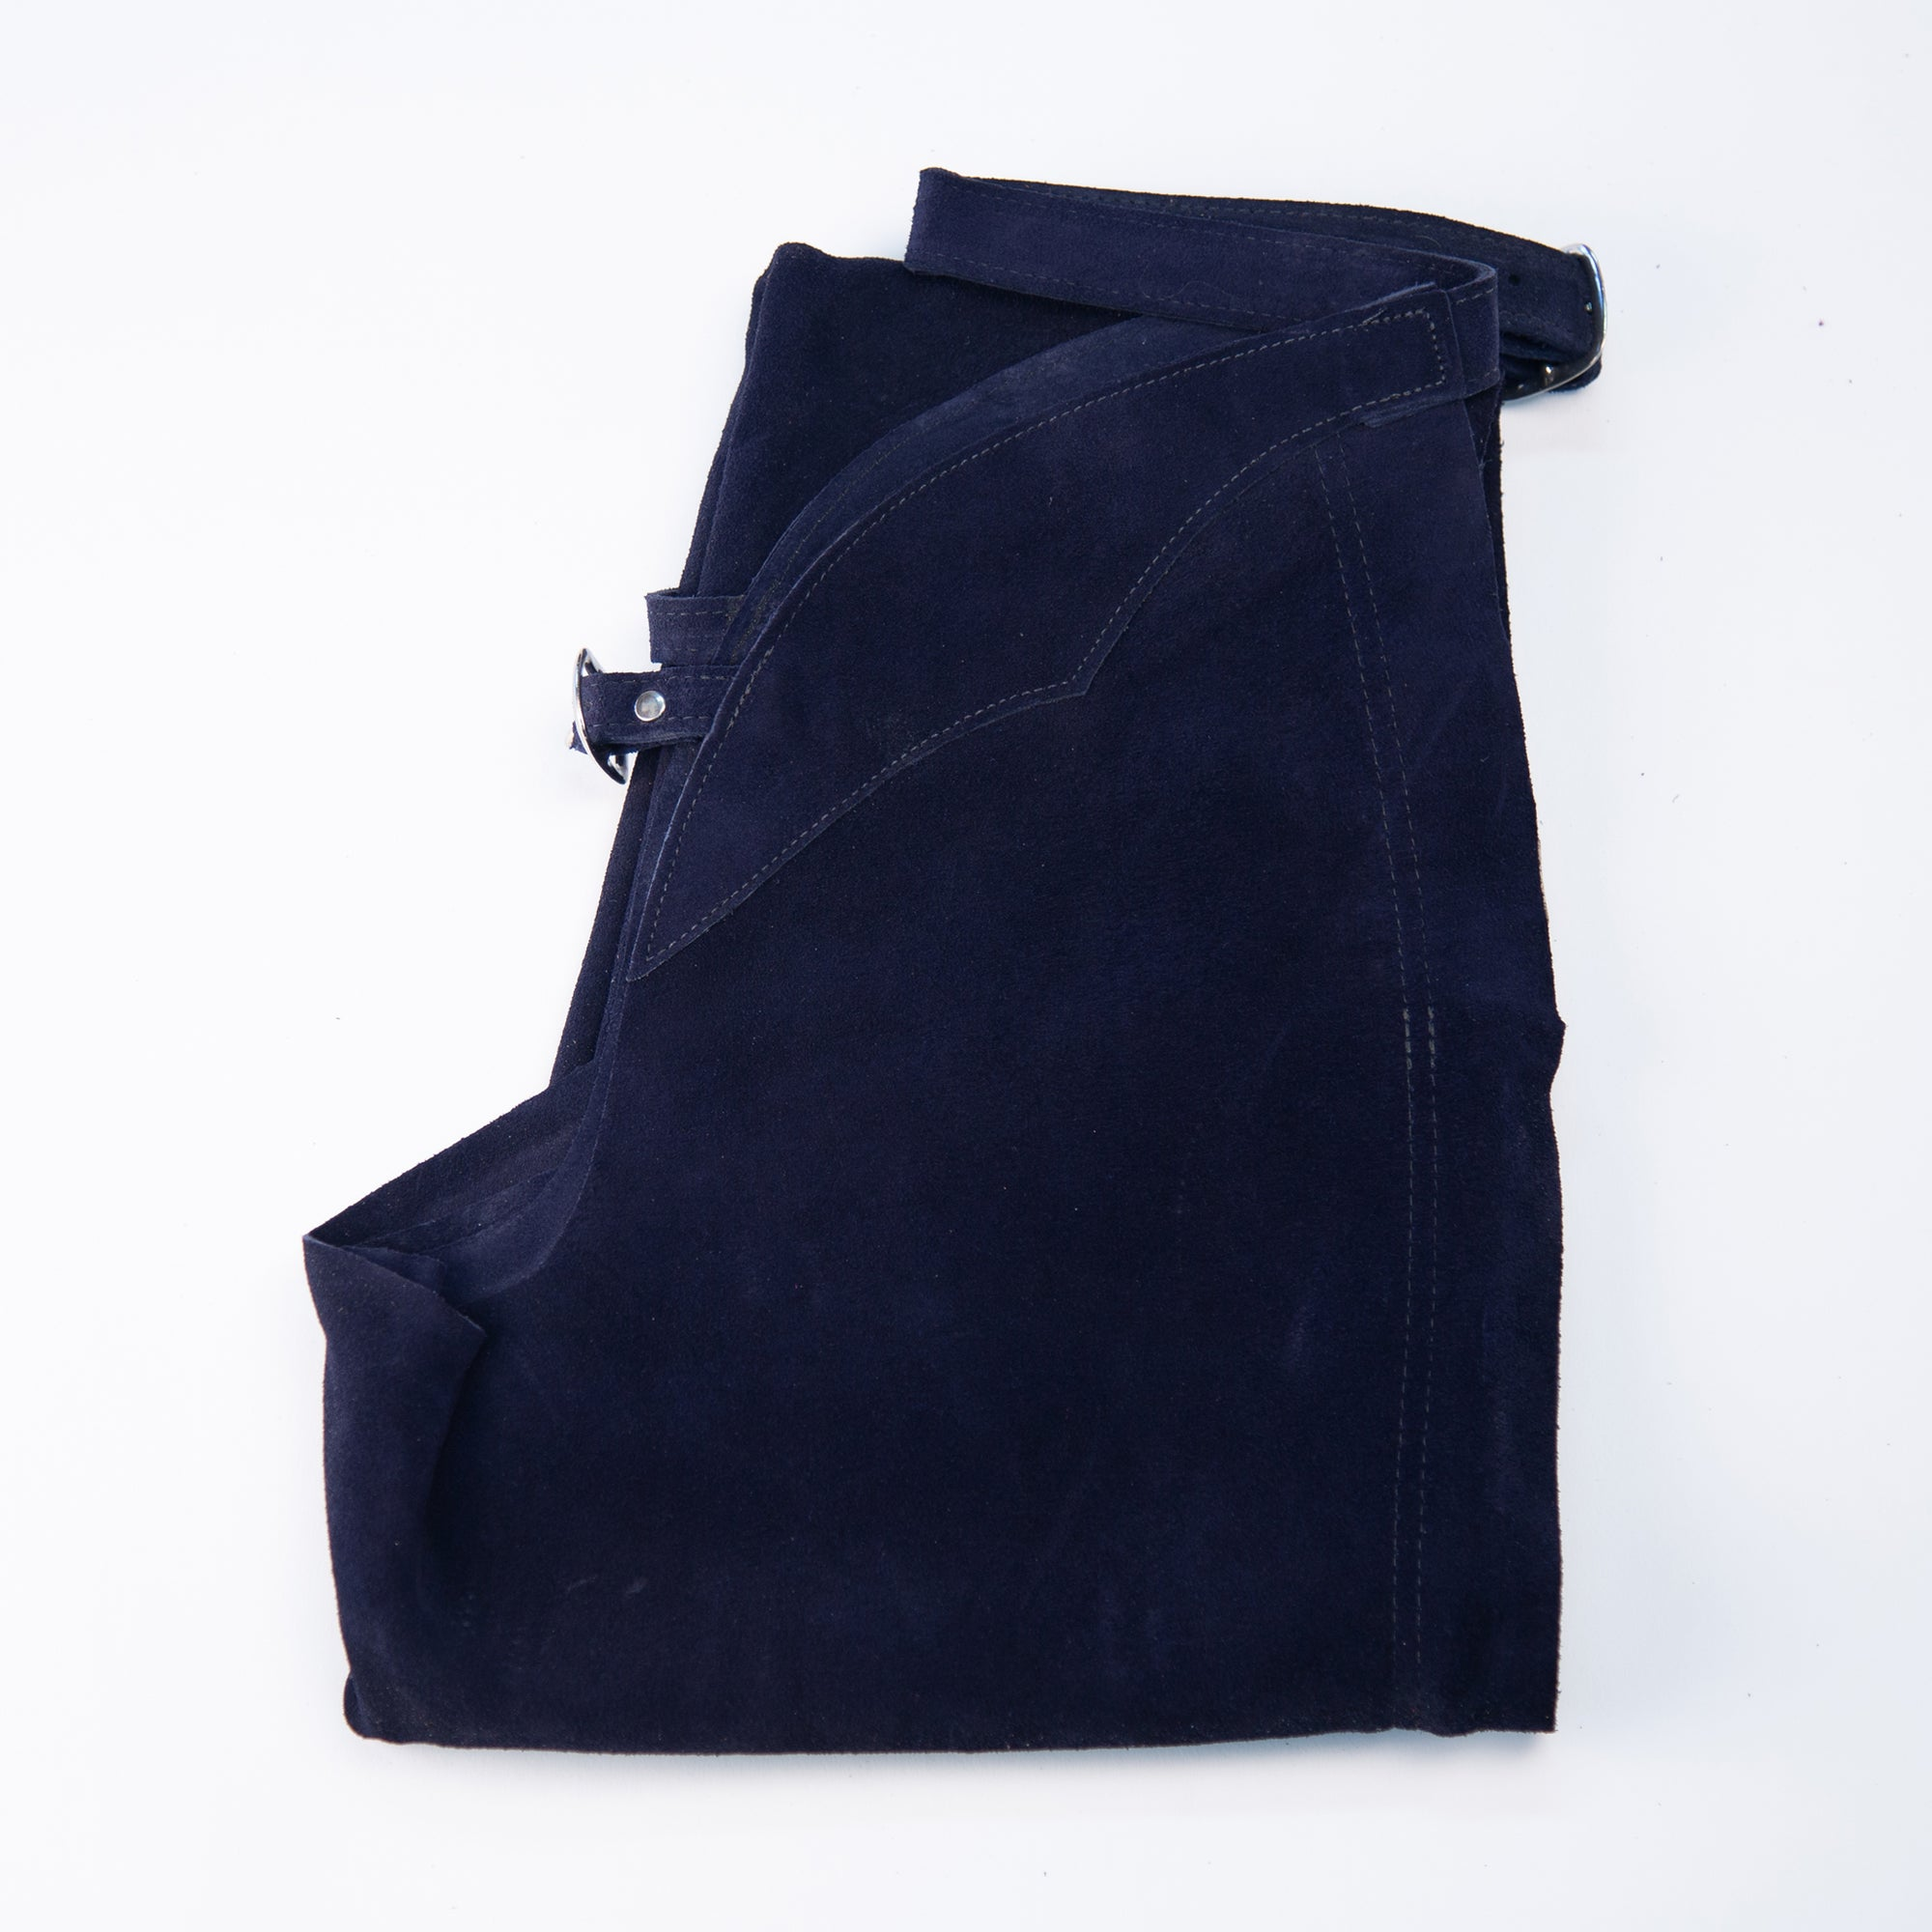 English Schooling Chaps - Navy Suede